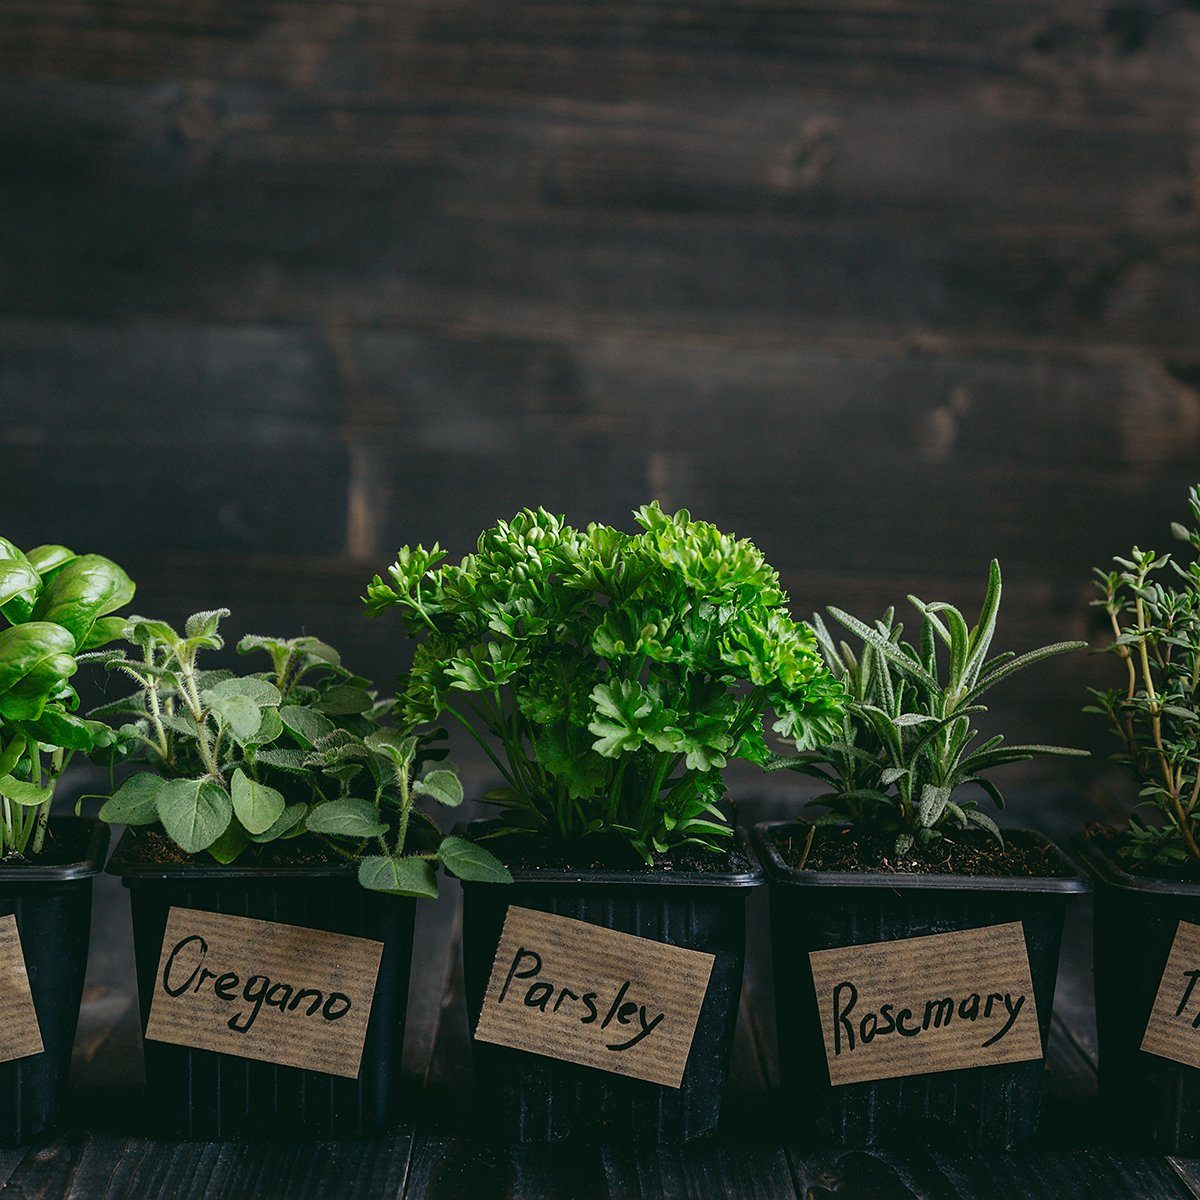 Fresh herbs on the wooden background